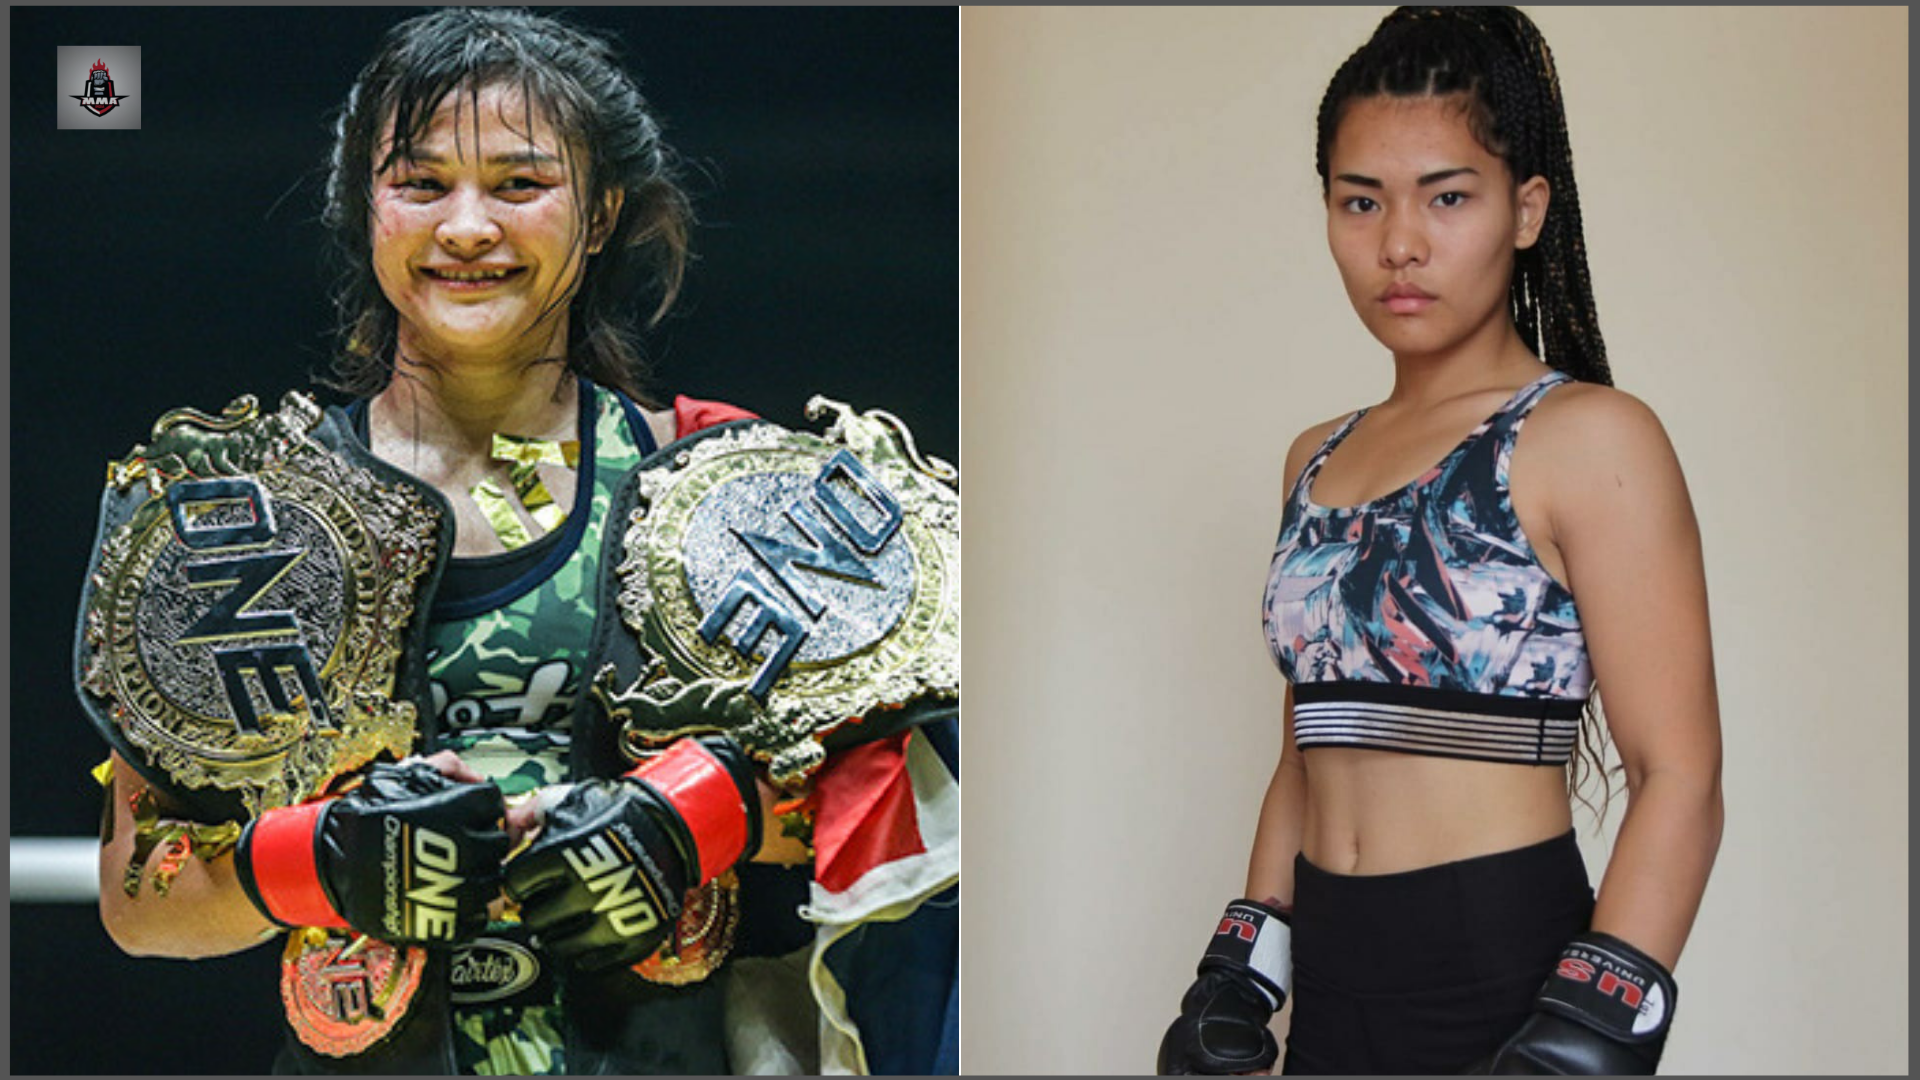 Will Stamp Fairtex's Transition to Mixed Martial Arts Be Tough? -